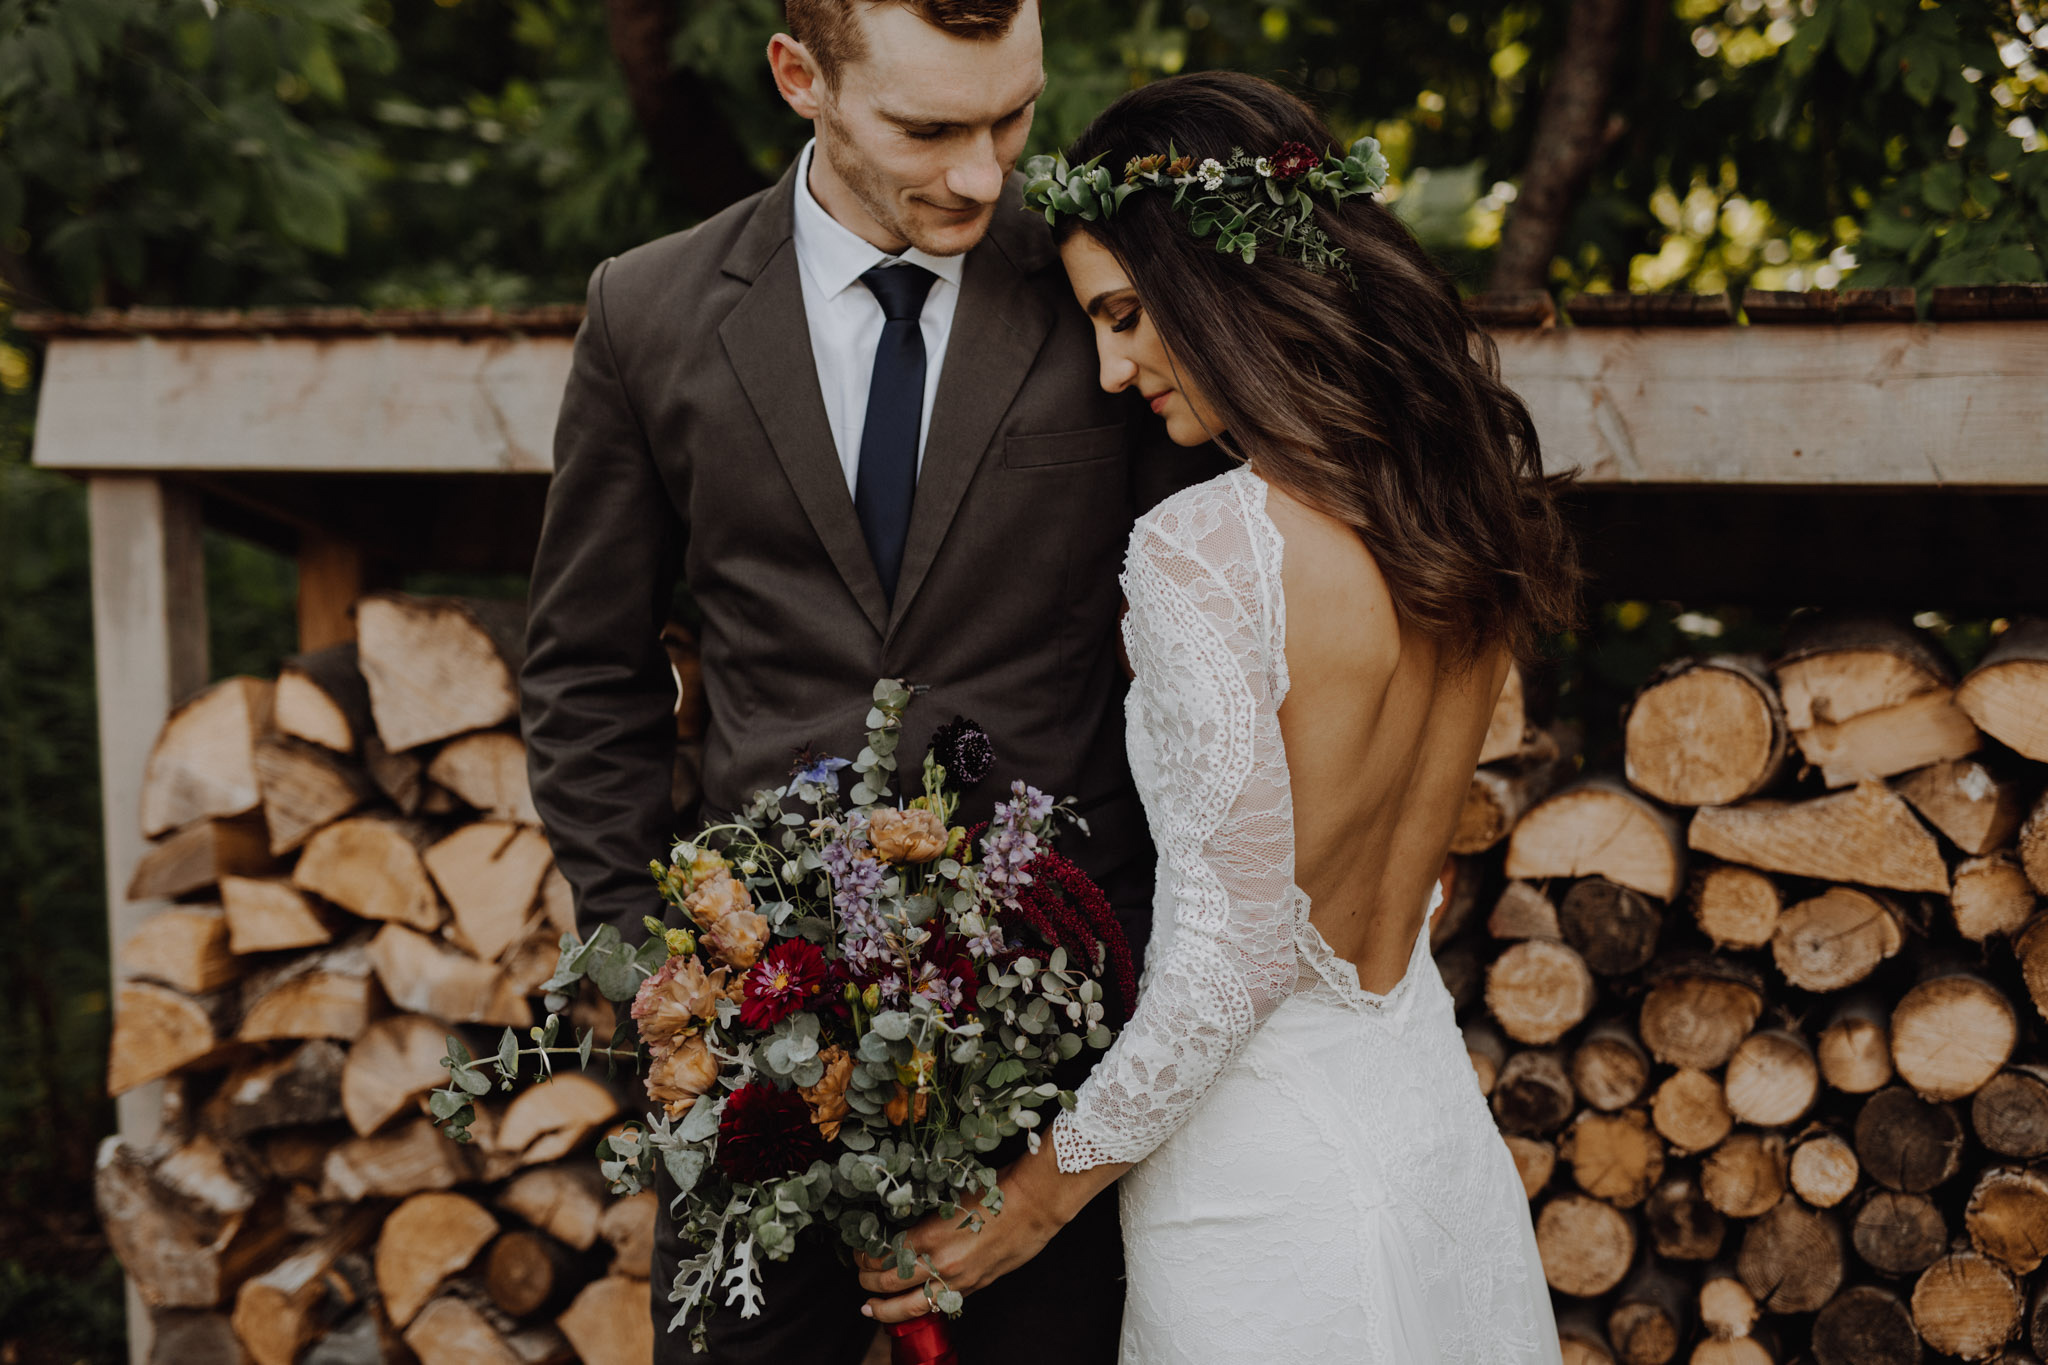 Outdoor Camp Wedding - portraits by the woodpile